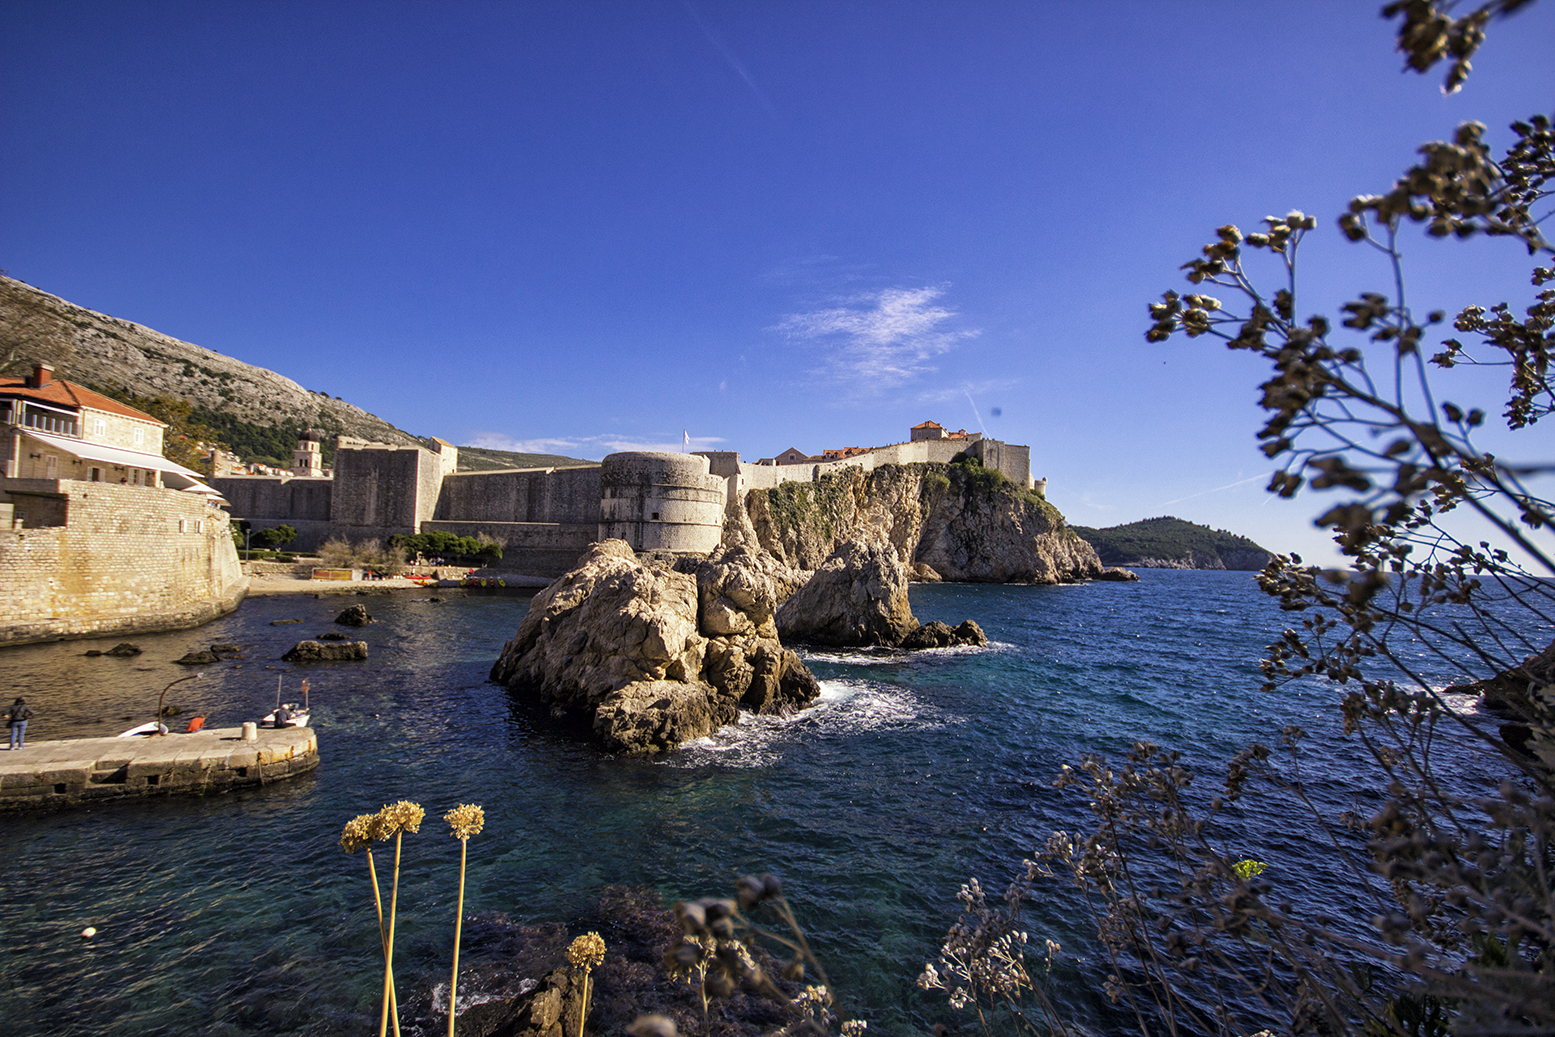 New York Times about Dubrovnik